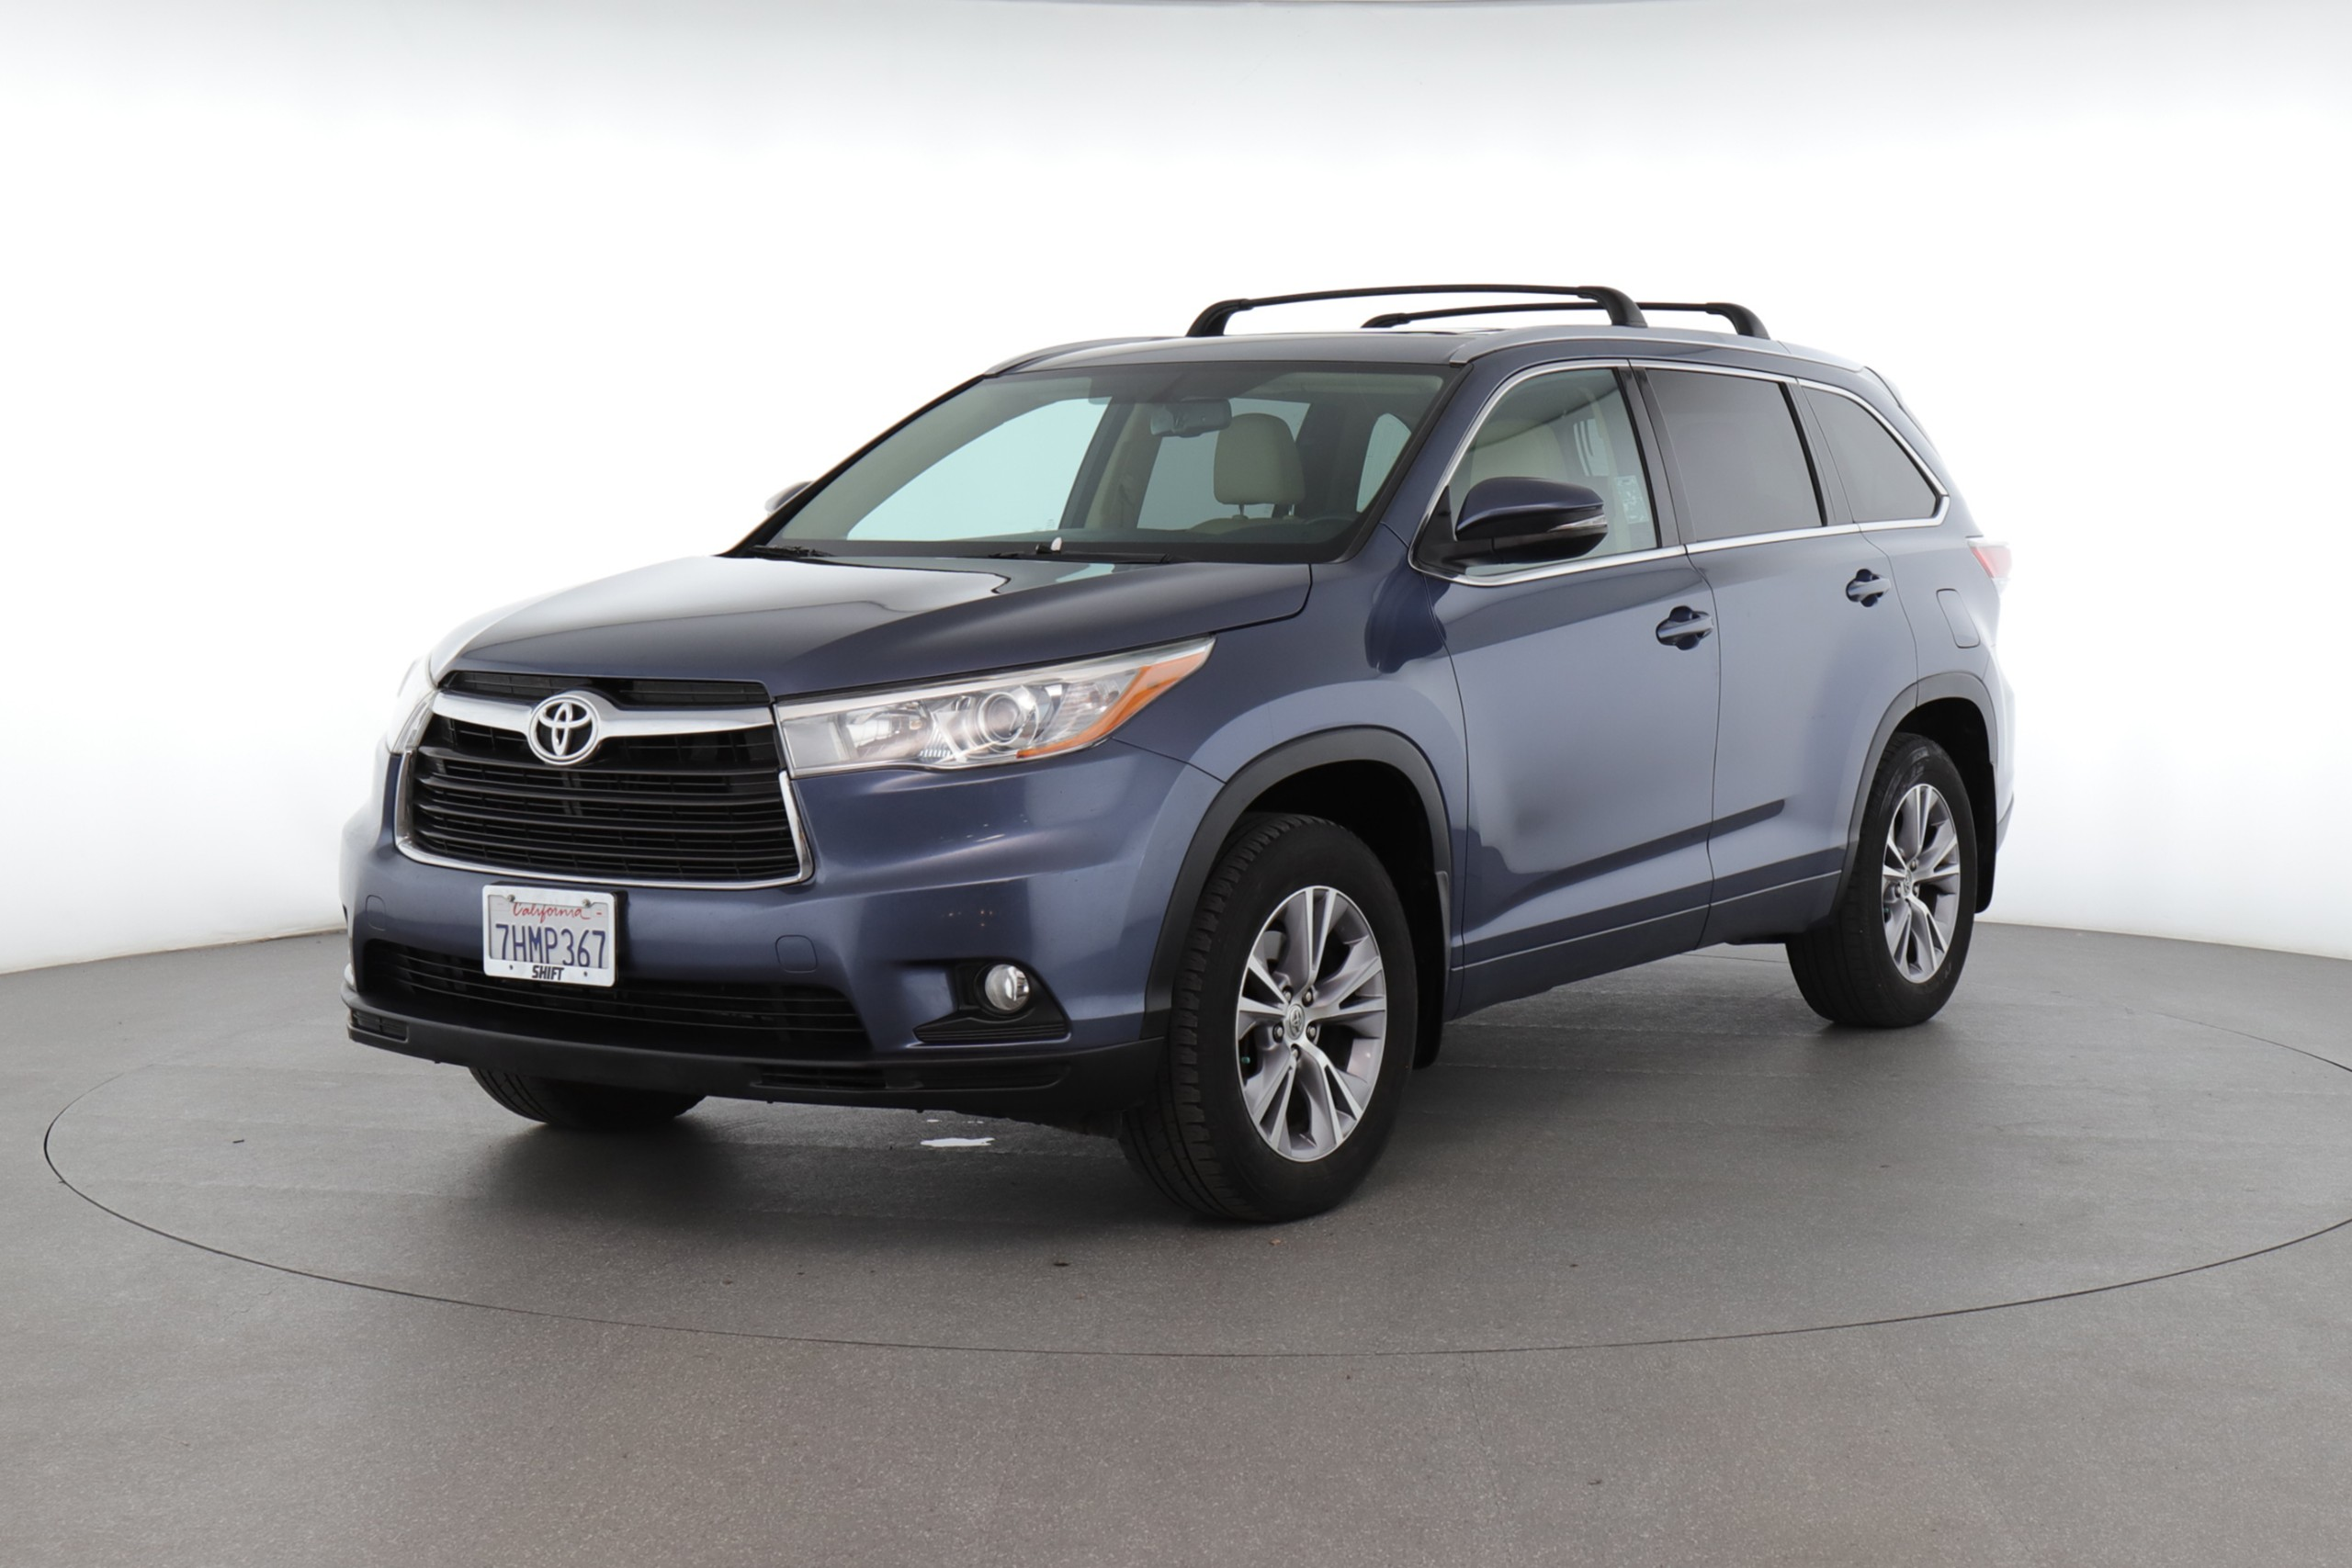 Our Complete Toyota Highlander Review